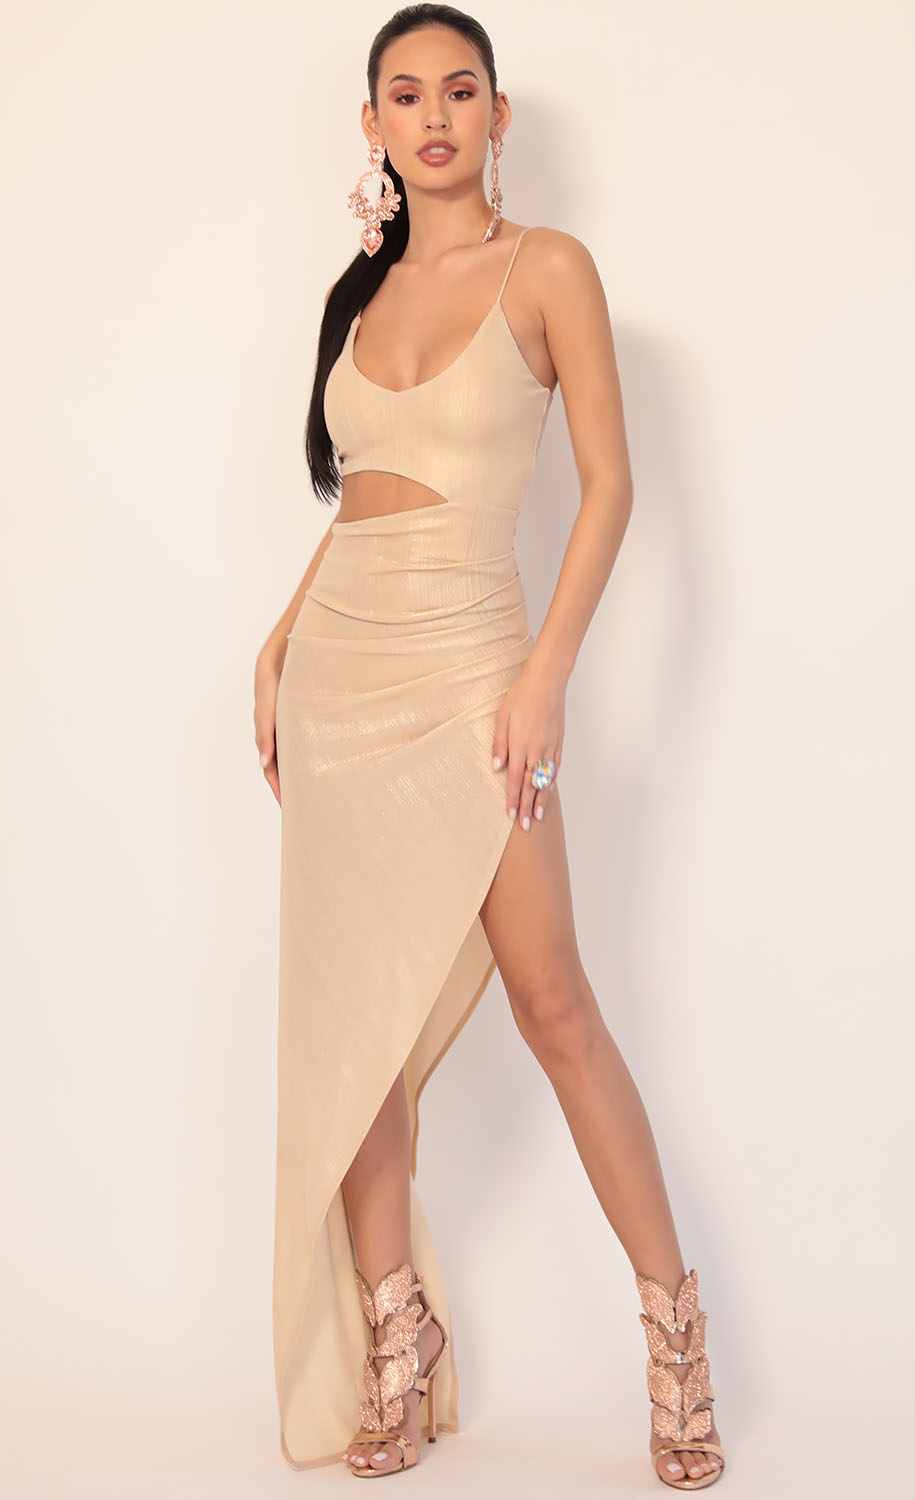 Ella Cutout Maxi Dress in Champagne